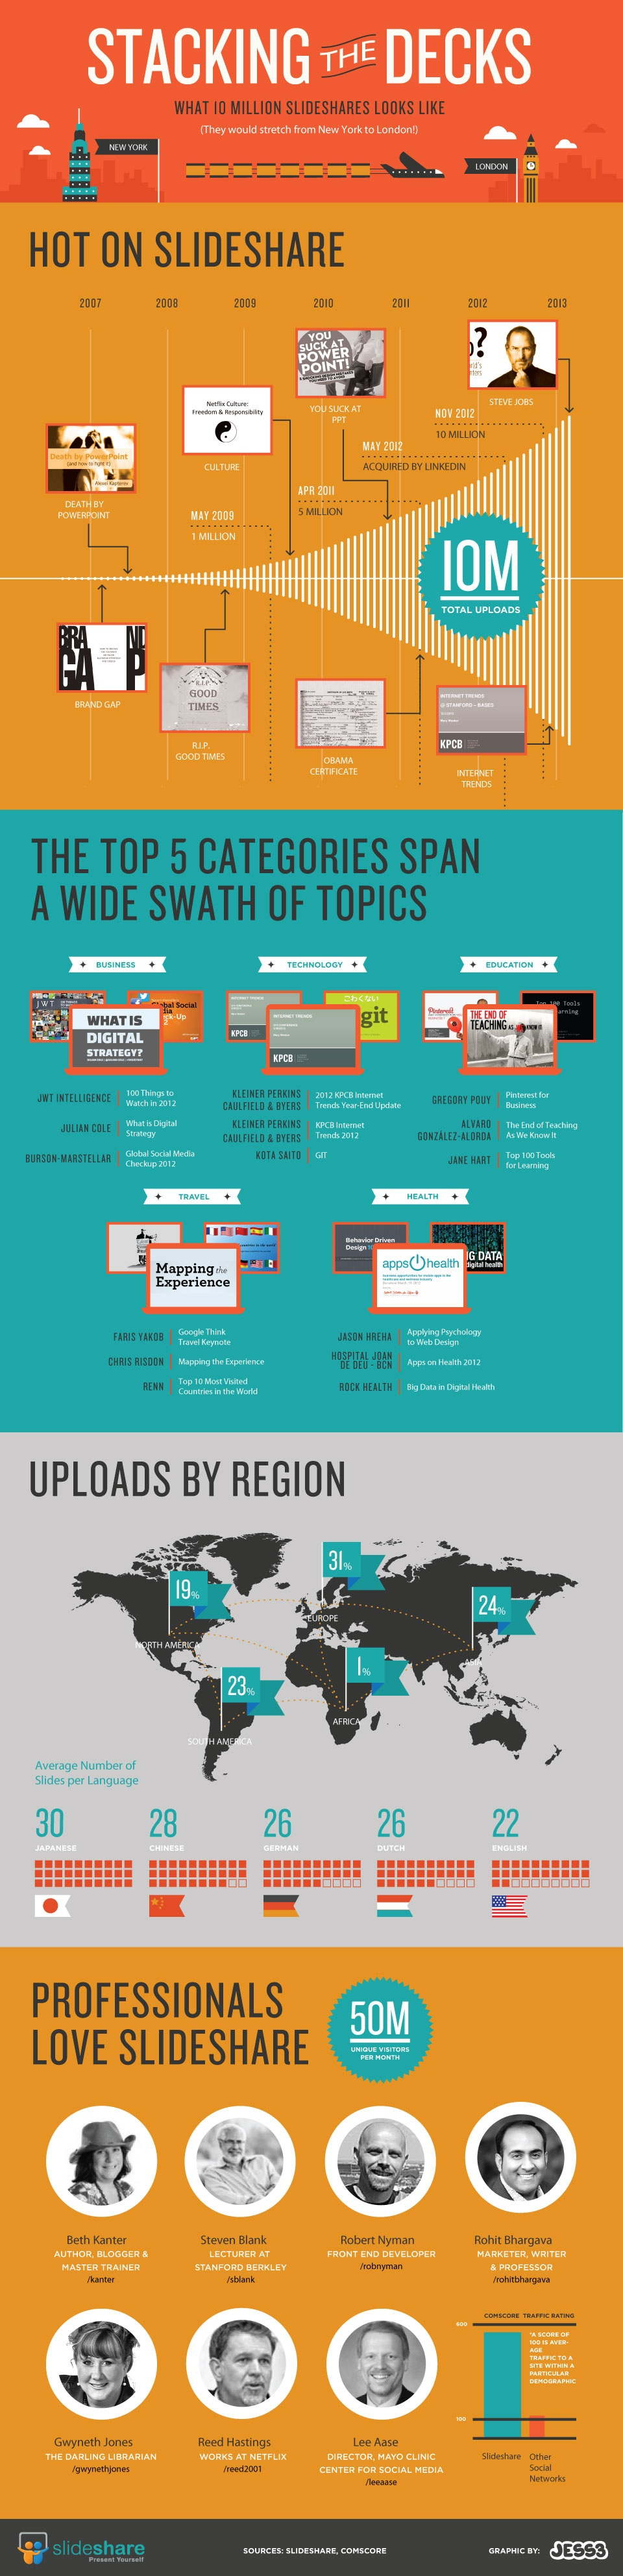 10 Million Uploads to SlideShare